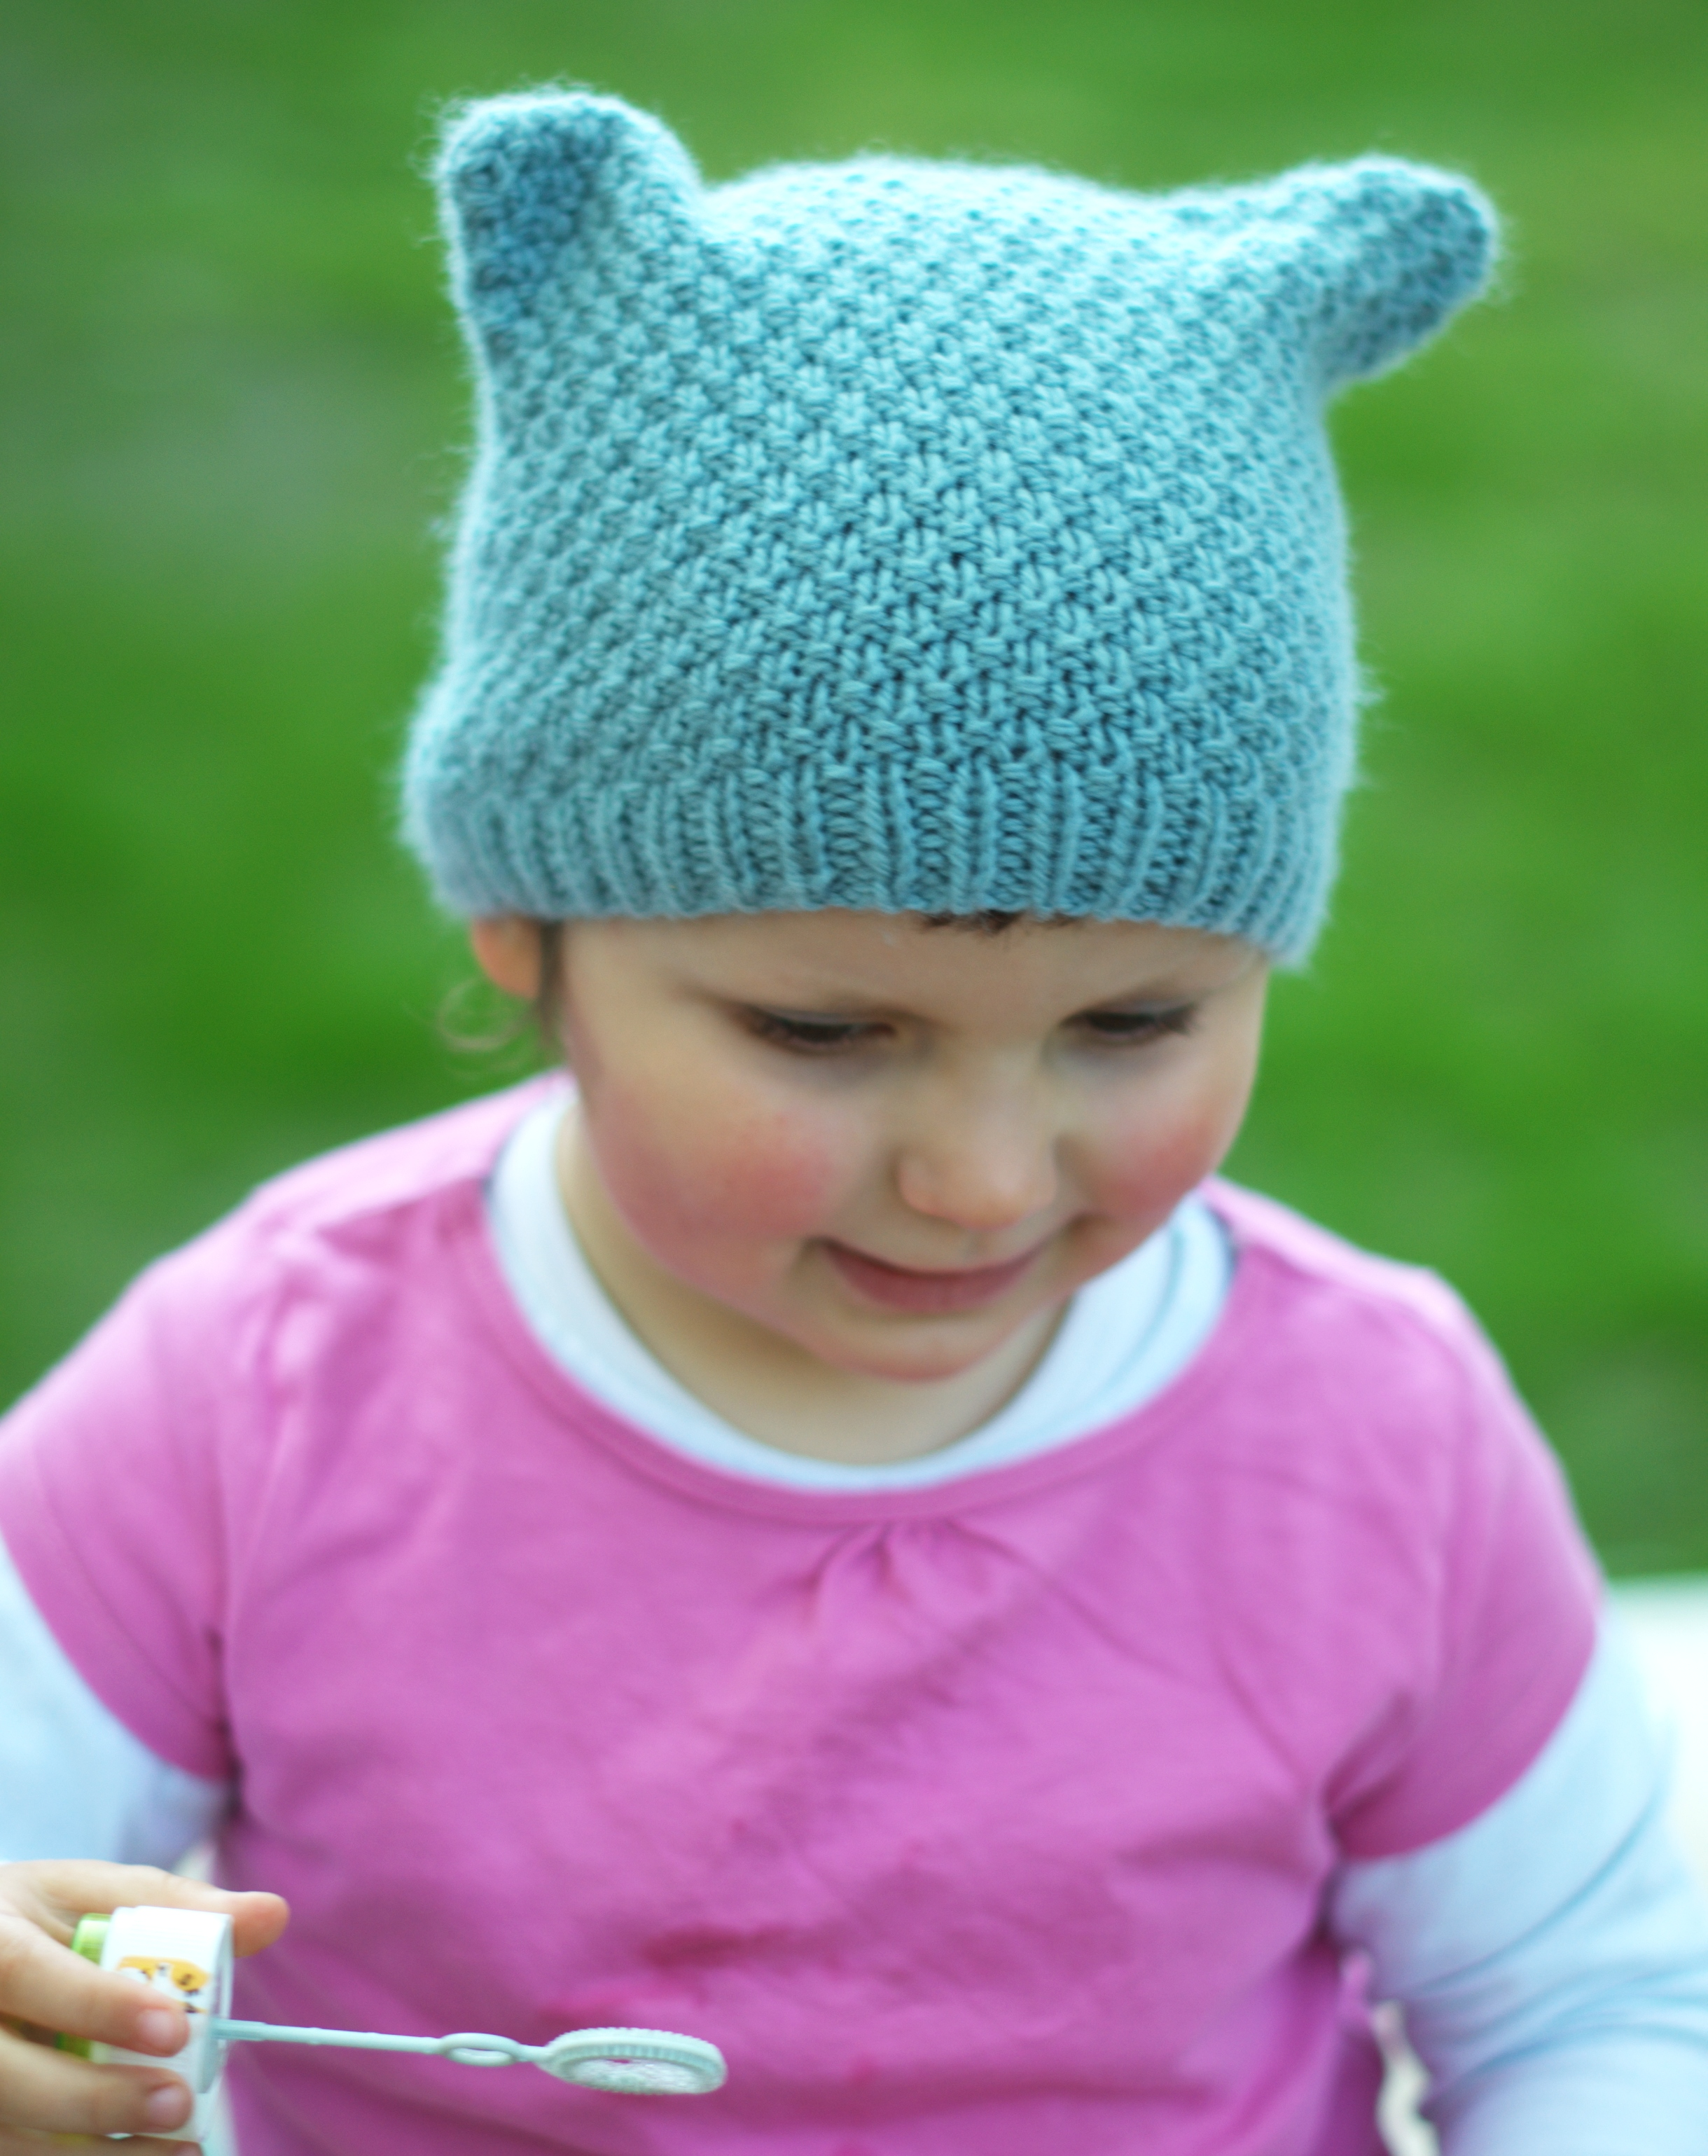 Ruskin childs Hat hand knitting pattern